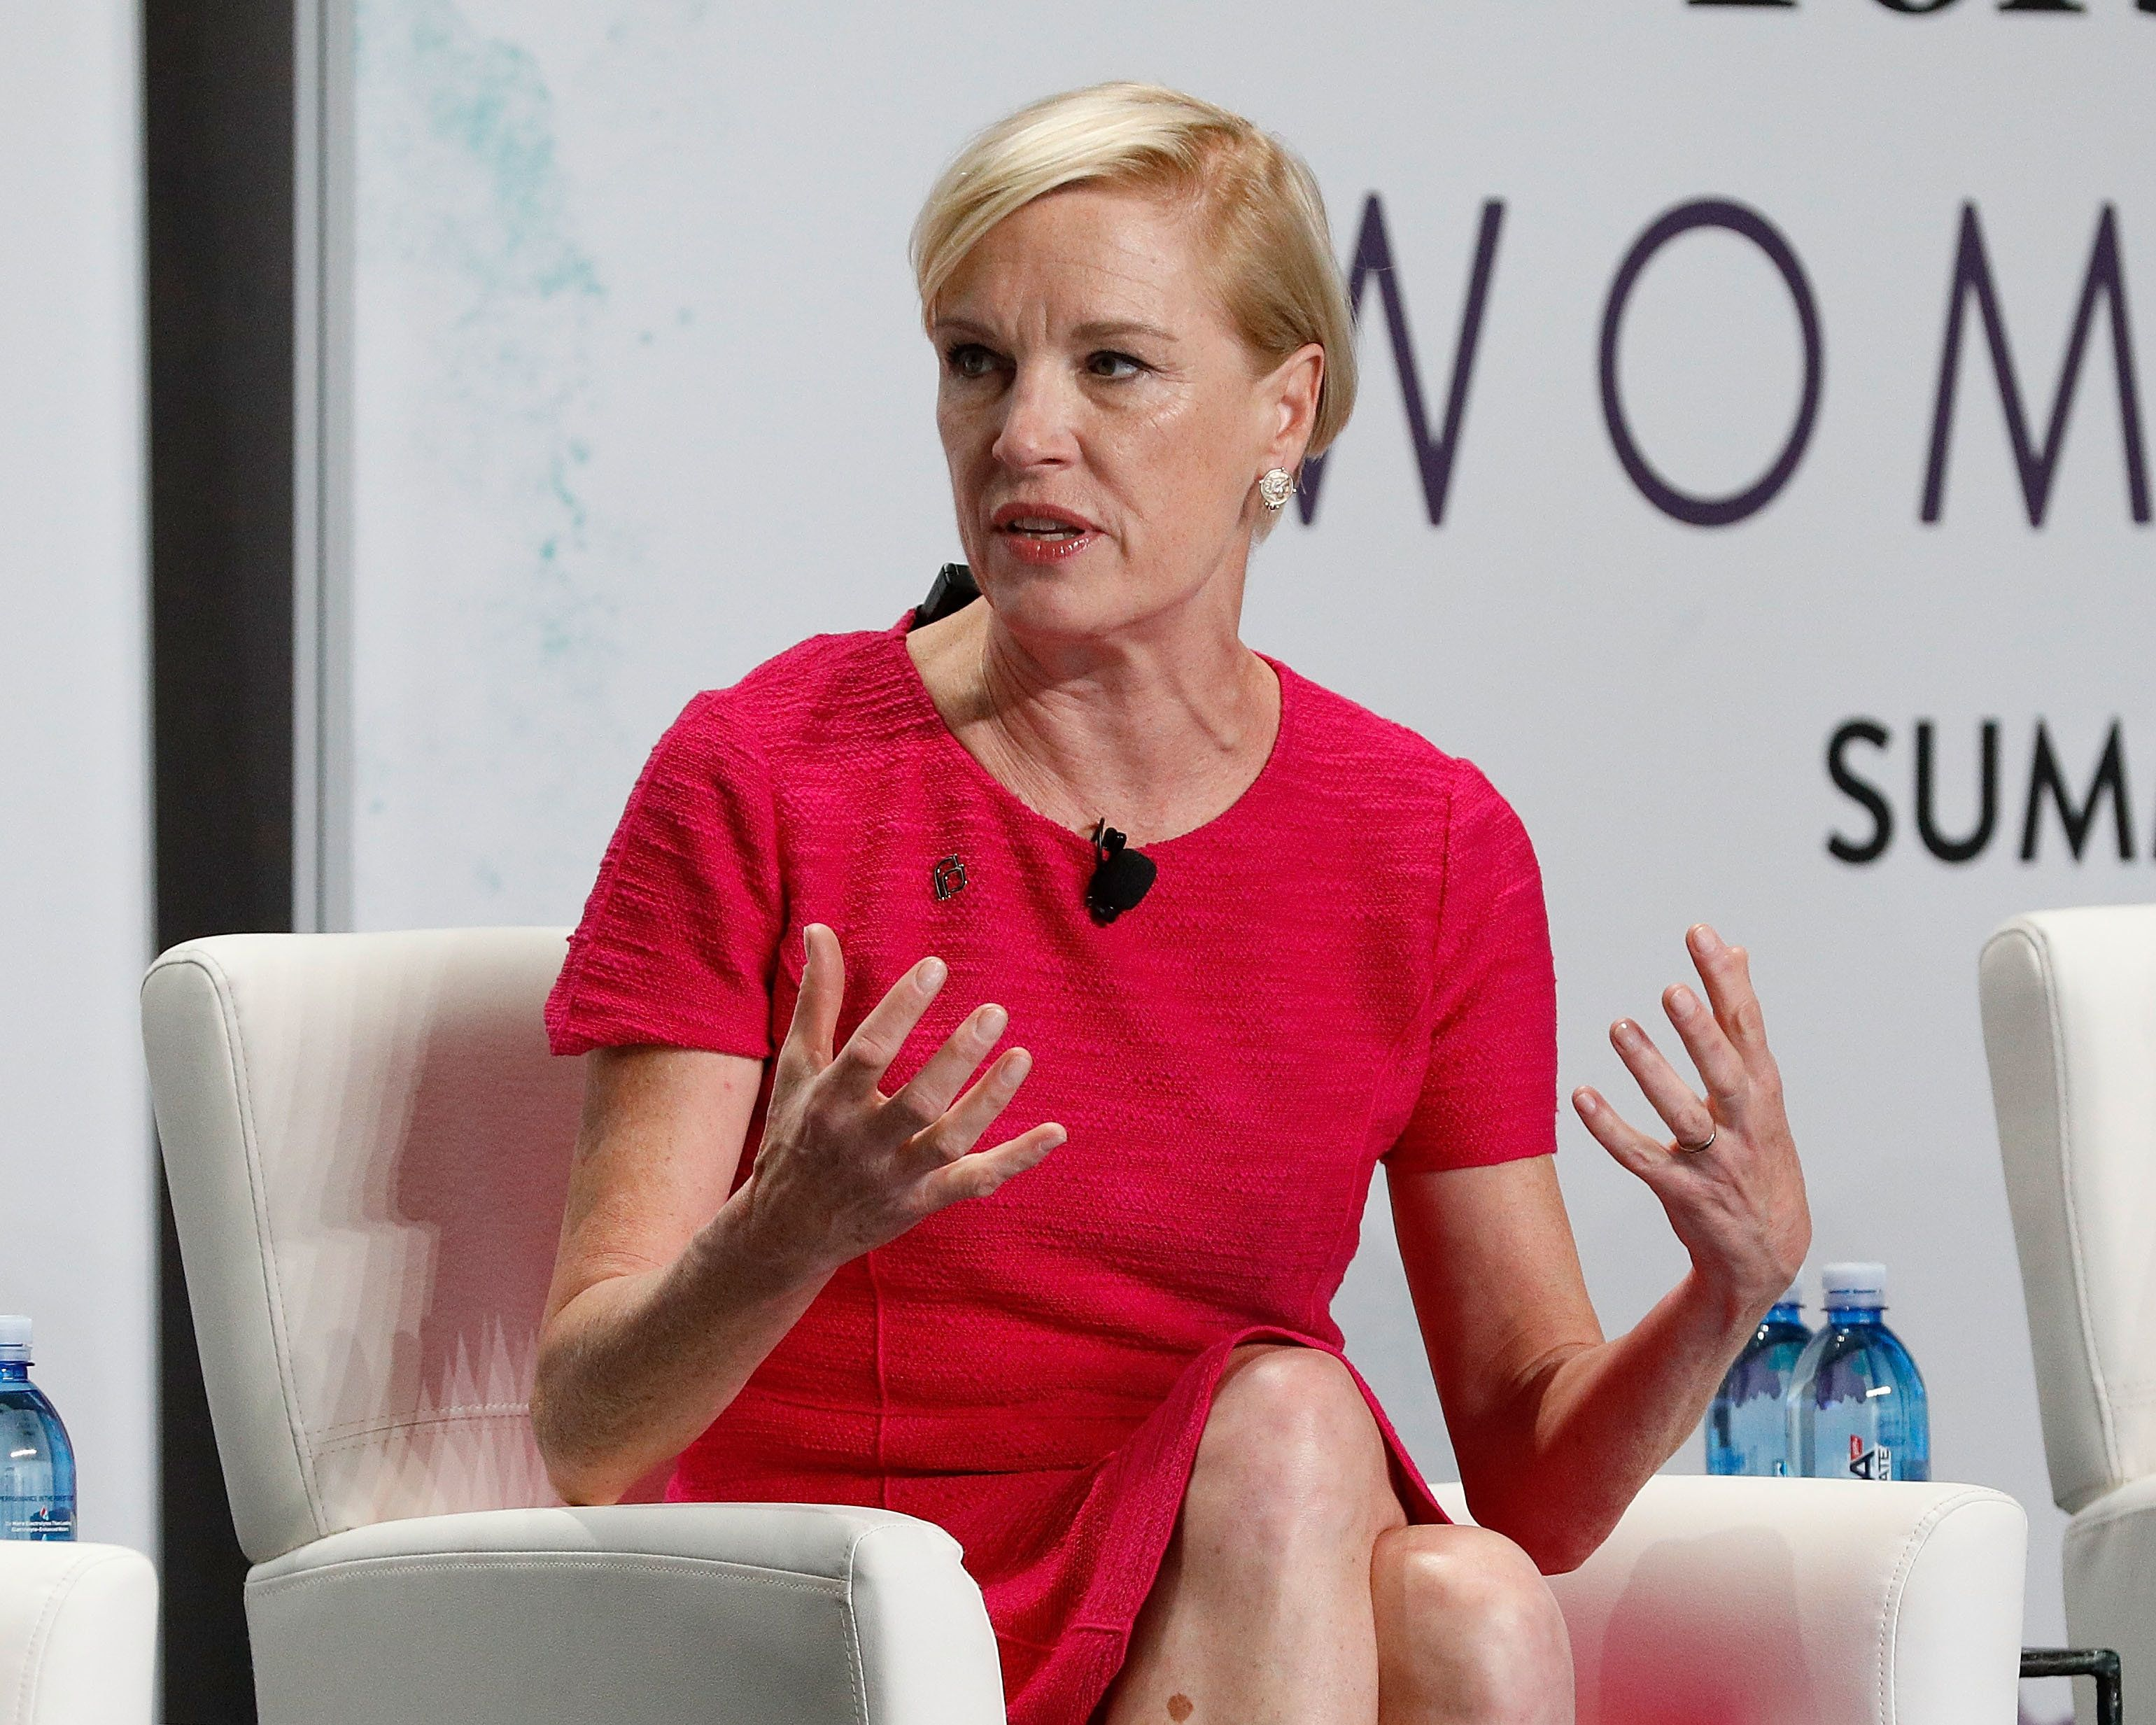 NEW YORK, NY - JUNE 13: Cecile Richards speaks during the 2017 Forbes Women's Summit at Spring Studios on June 13, 2017 in New York City.  (Photo by Taylor Hill/FilmMagic)